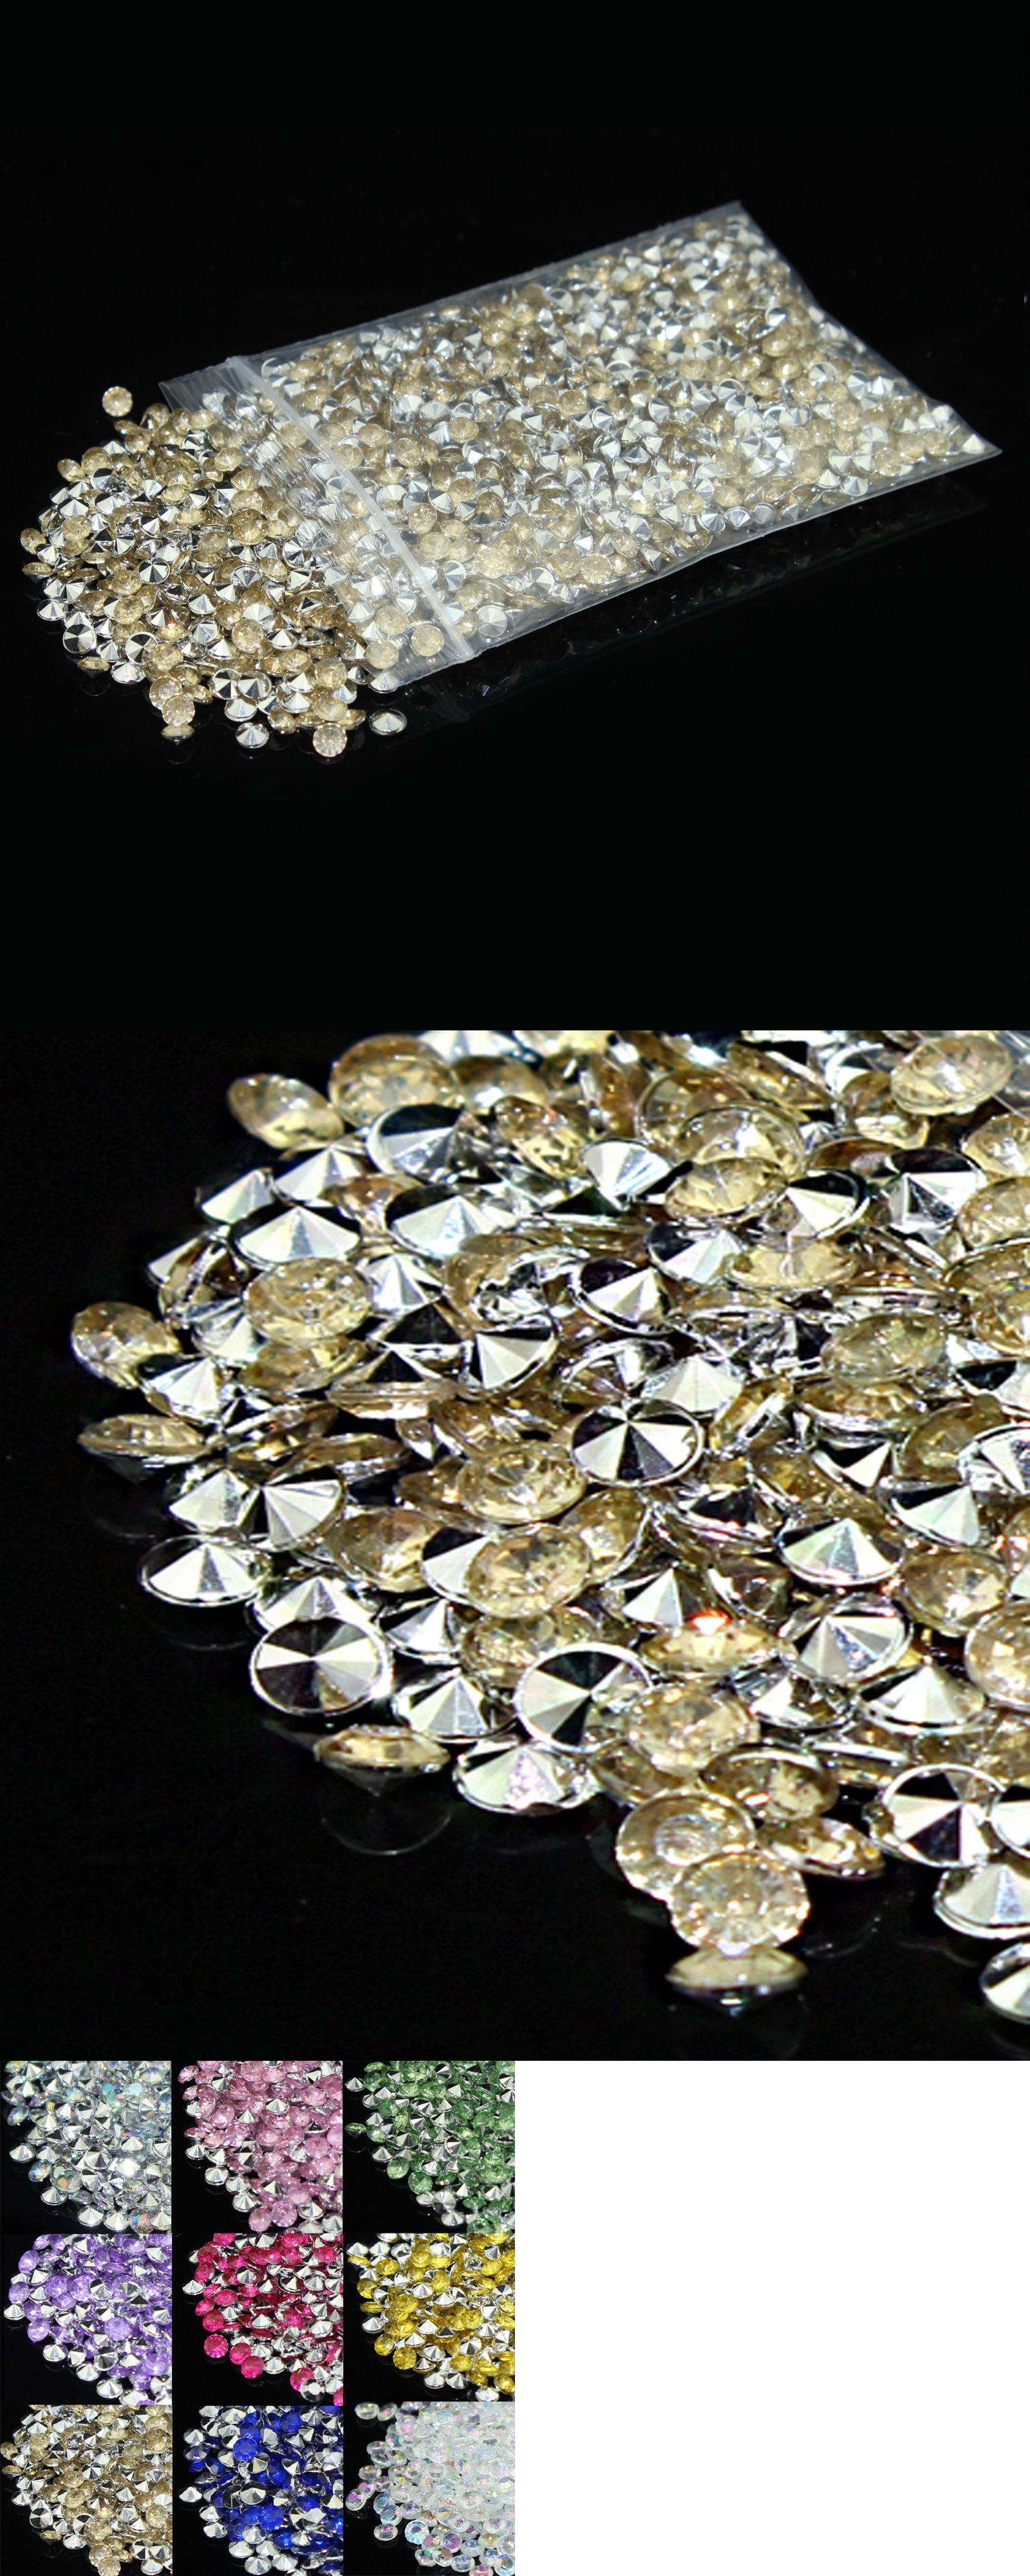 Confetti 98733: 100000 4.5Mm Wedding Decoration Crystals Diamond Table Confetti Champagneandsilver -> BUY IT NOW ONLY: $76.99 on eBay!